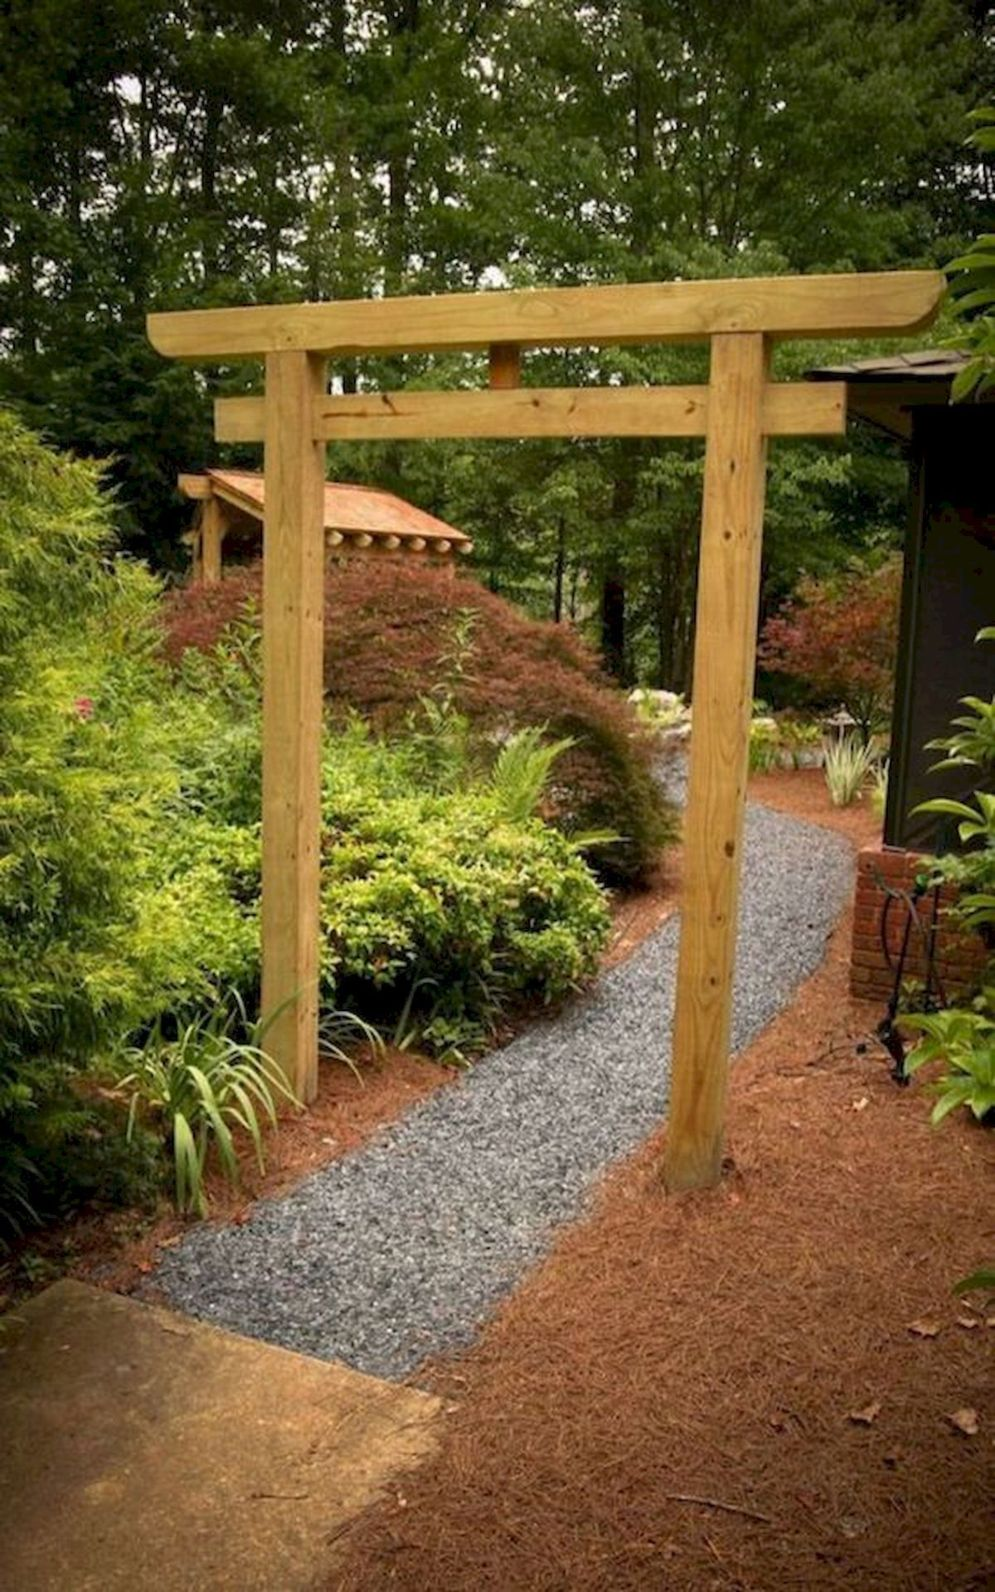 Green outdoor ideas with calming vibes from Zen garden style showing harmonious and balanced various natural elements Image 27